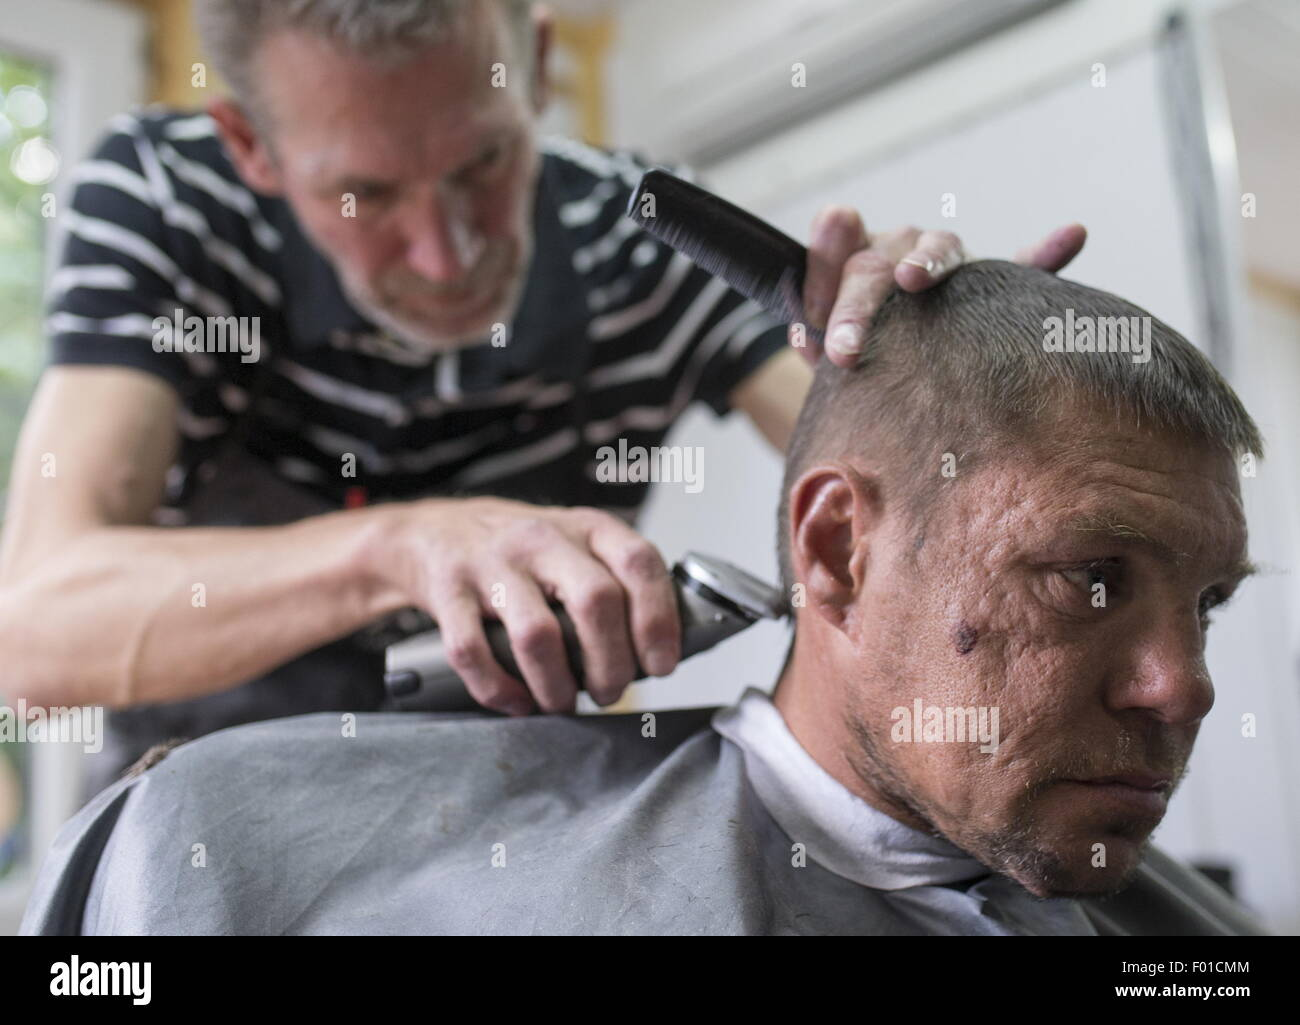 Moscow Russia 5th Aug 2015 A Man Getting A Haircut At The First